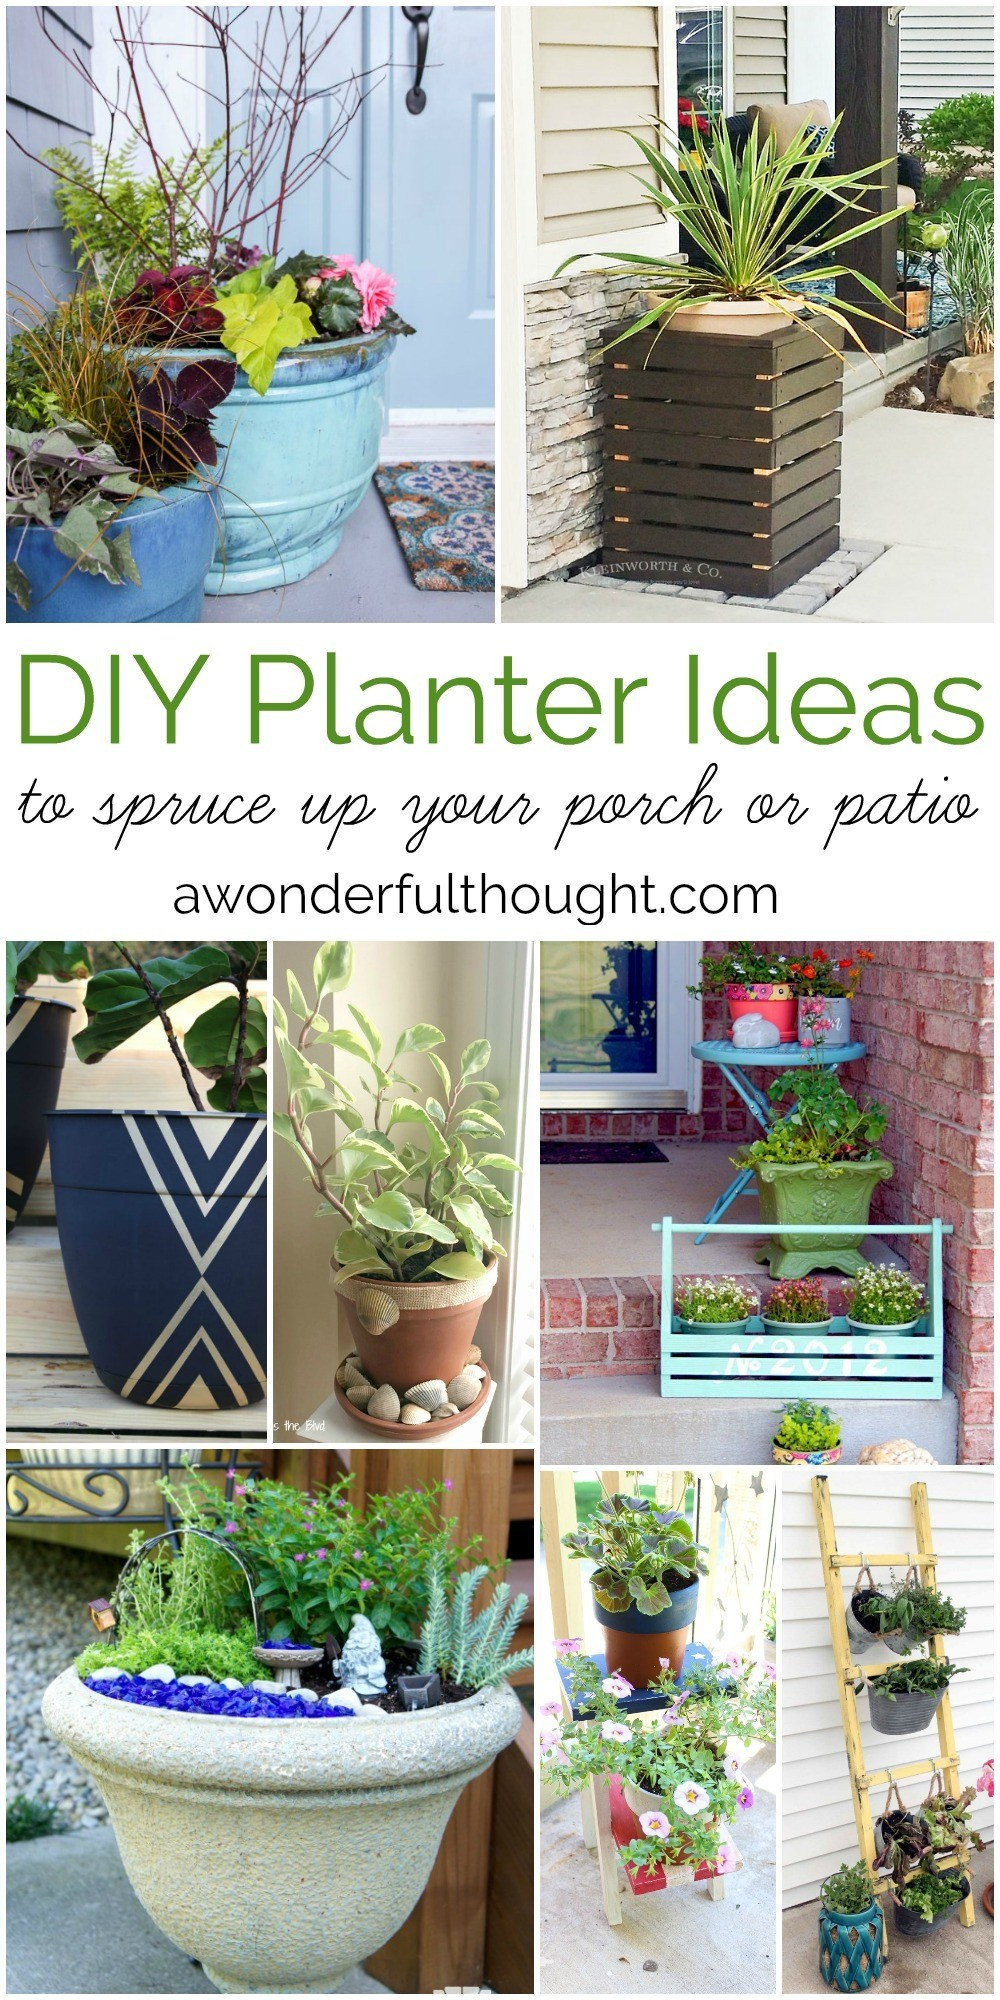 Best ideas about DIY Planter Ideas . Save or Pin DIY Planter Ideas to Spruce Up Your Porch or Patio A Now.